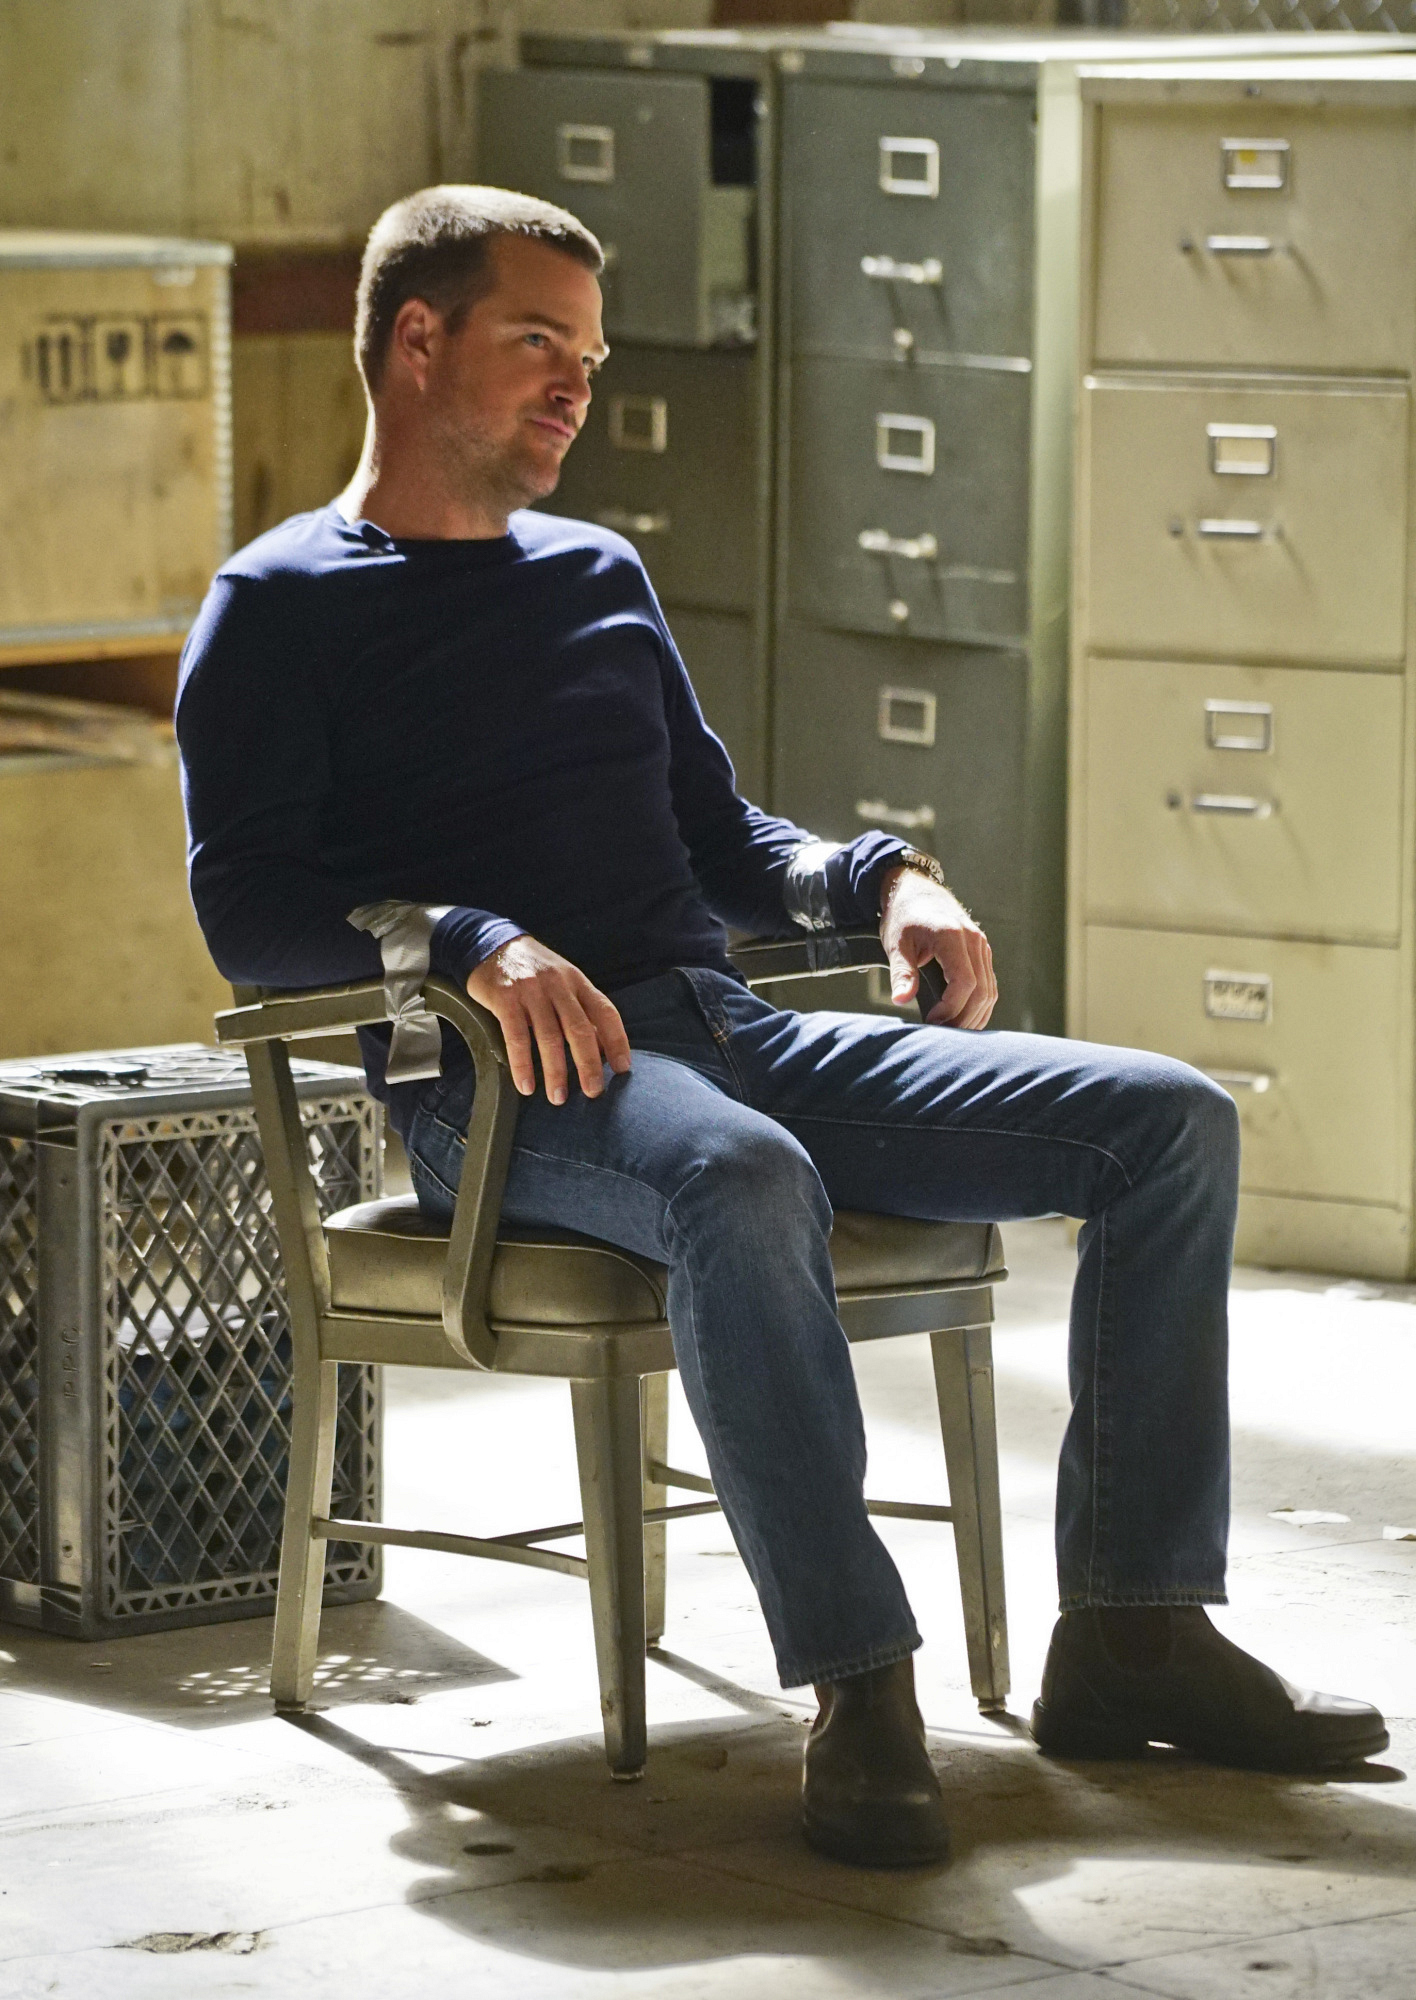 Chris O'Donnell as Special Agent G. Callen